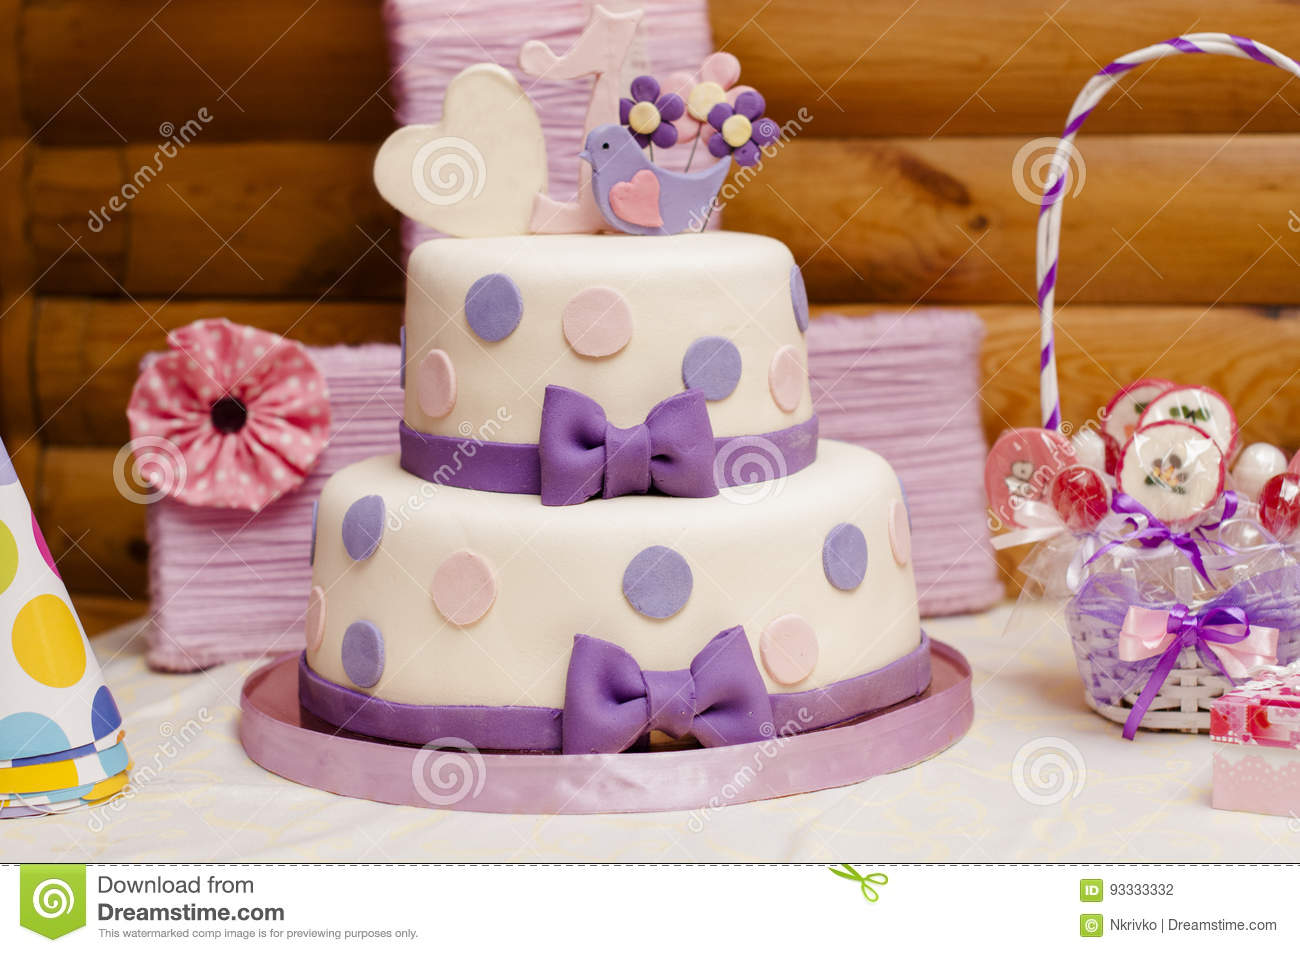 Two Tier Birthday Cake Stock Photo Image Of Decor Event 93333332